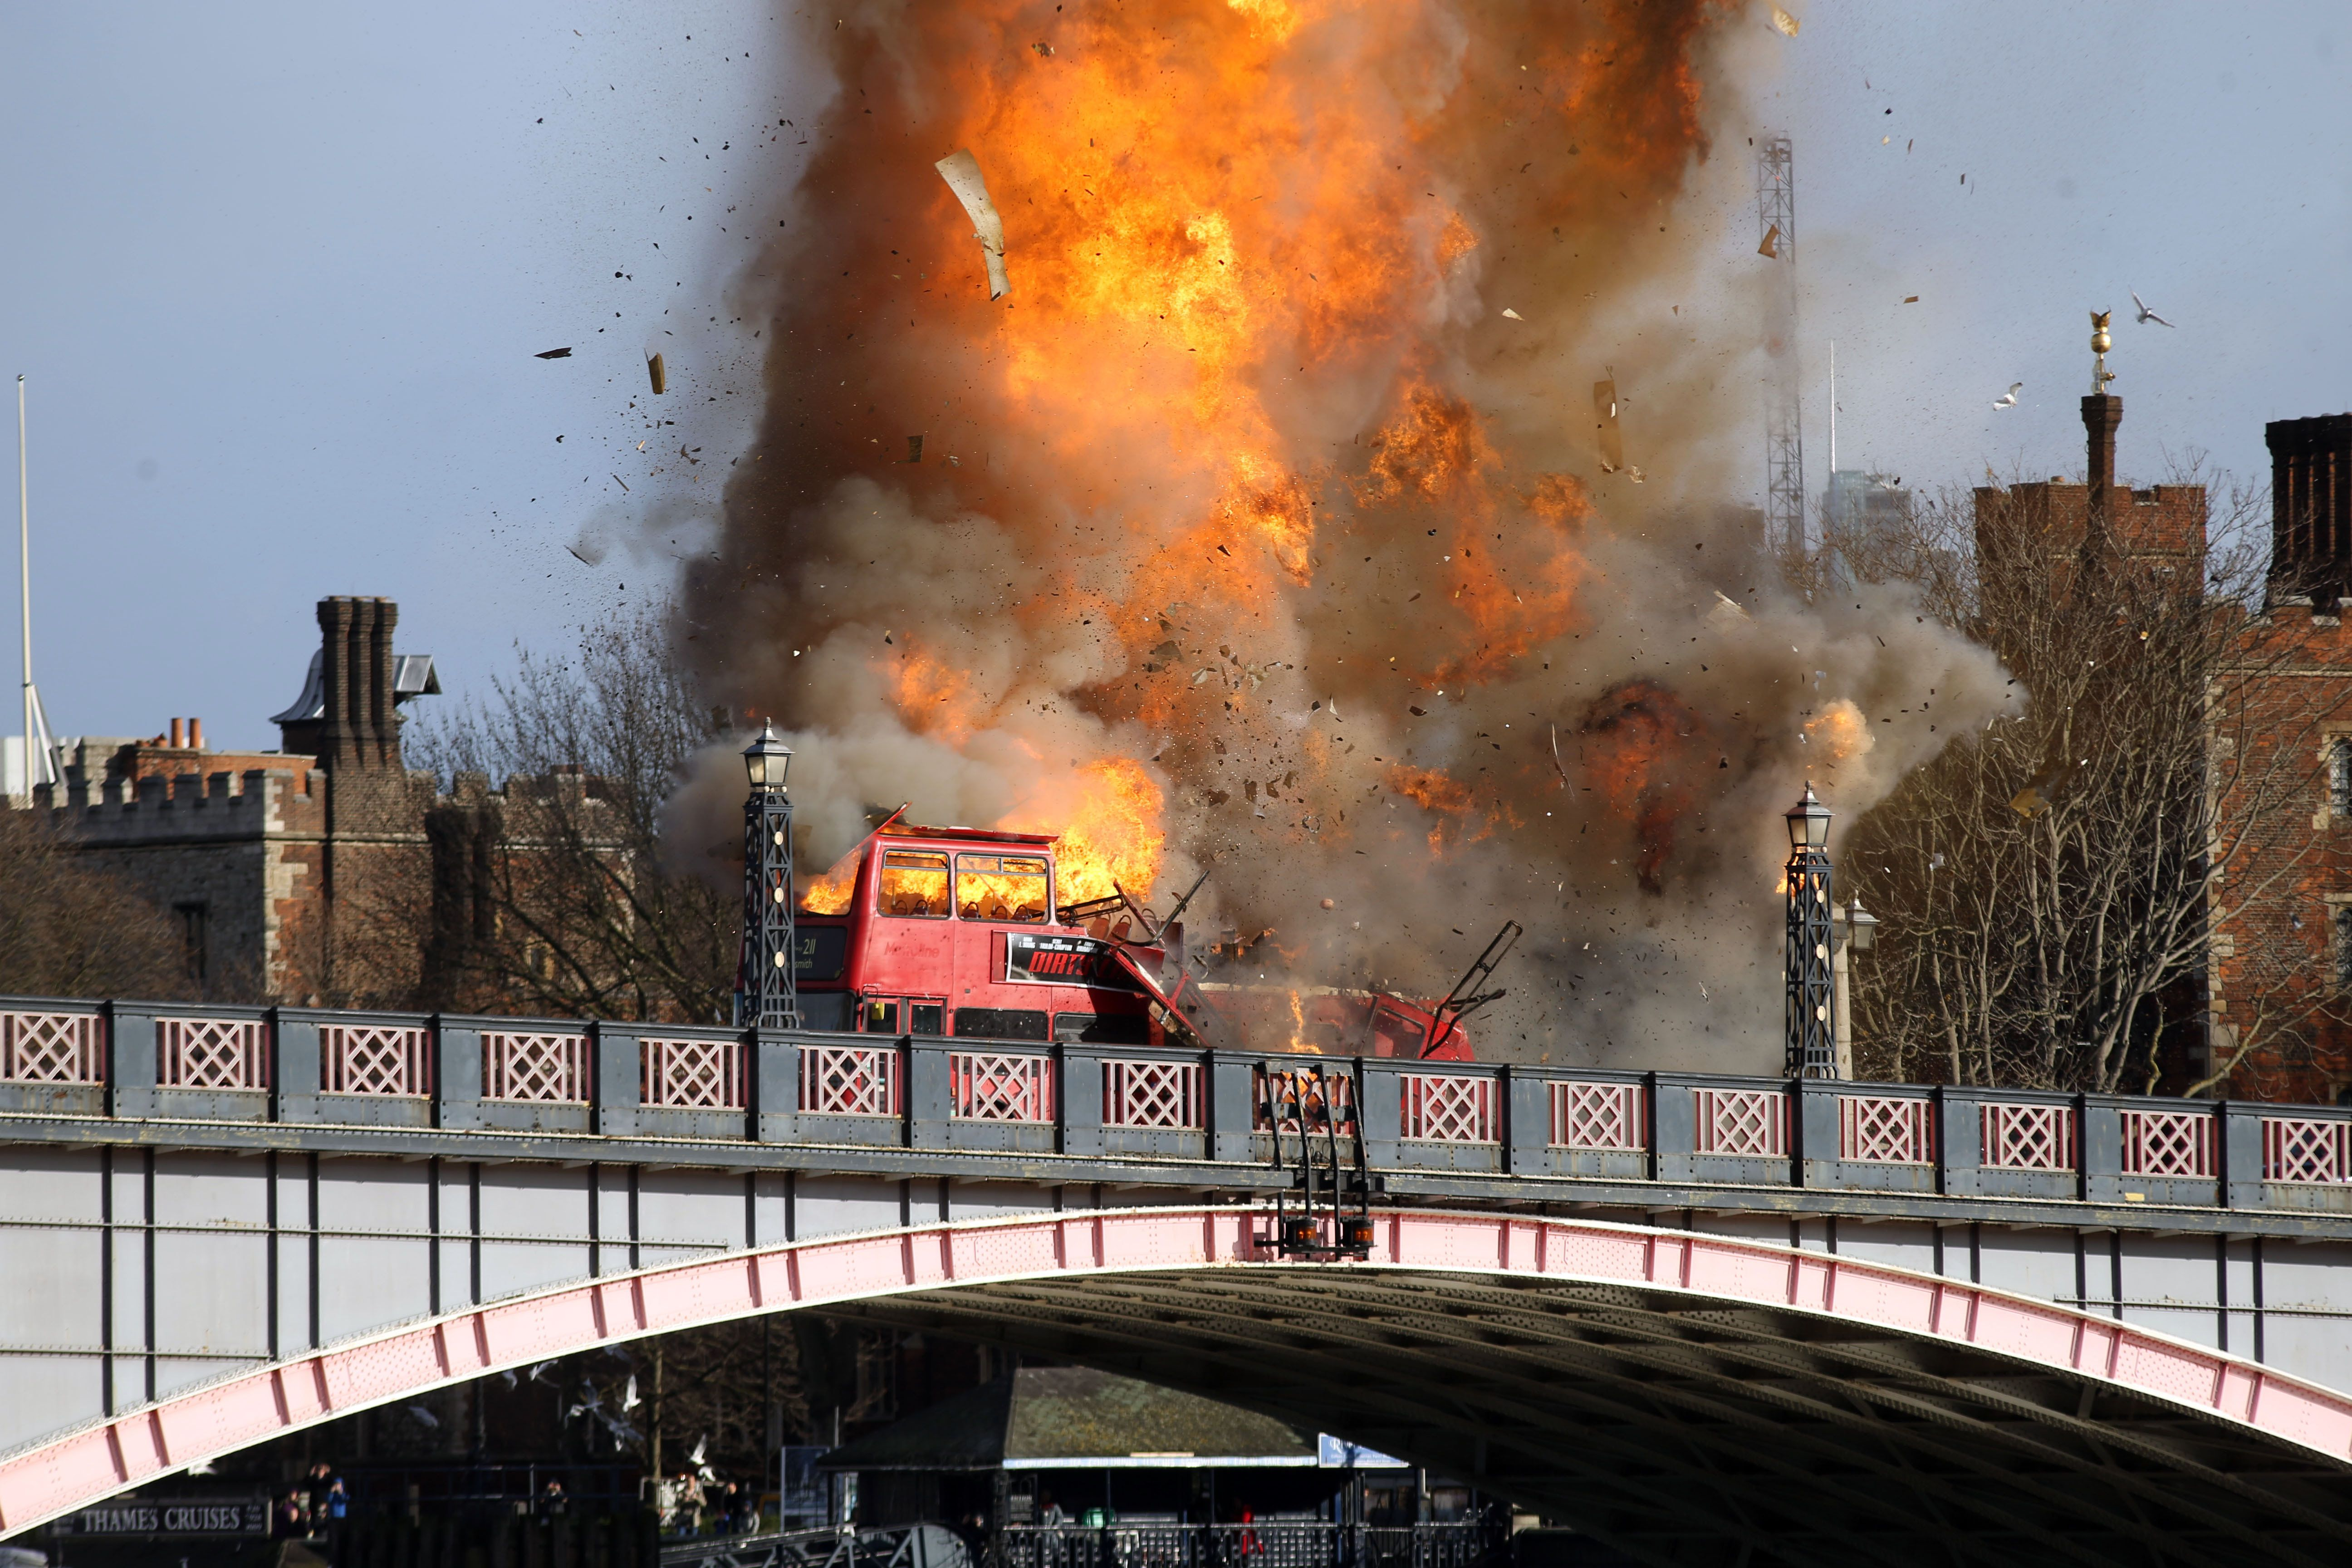 A bus explodes on Lambeth Bridge in London during filming for Jackie Chan's new film The Foreigner.